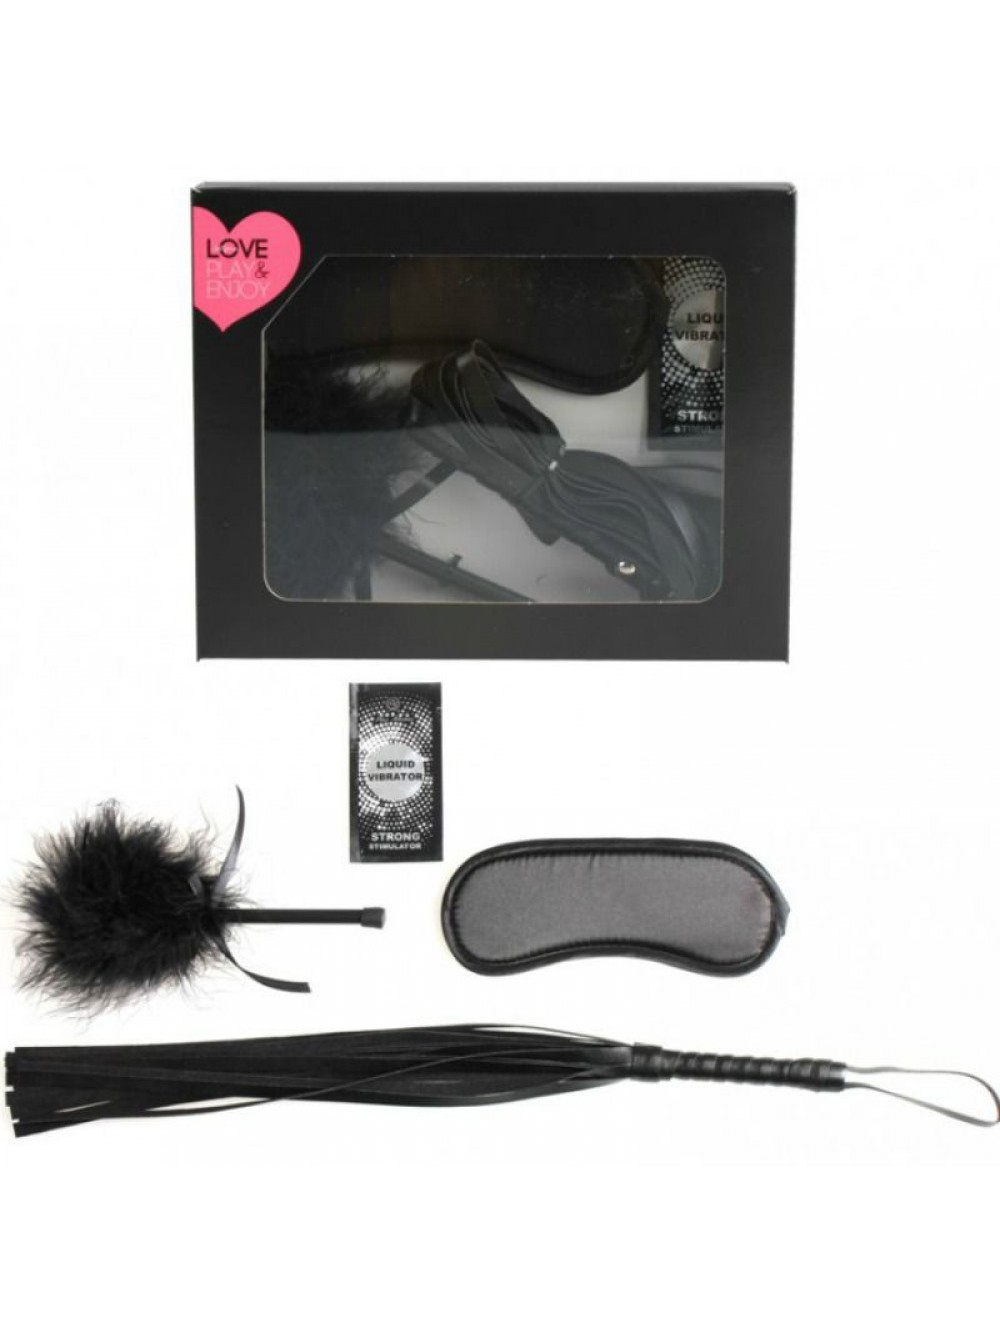 FIRST KIT BDSM FEATHER + MONODOSE+ WHIP + BLINDFOLD